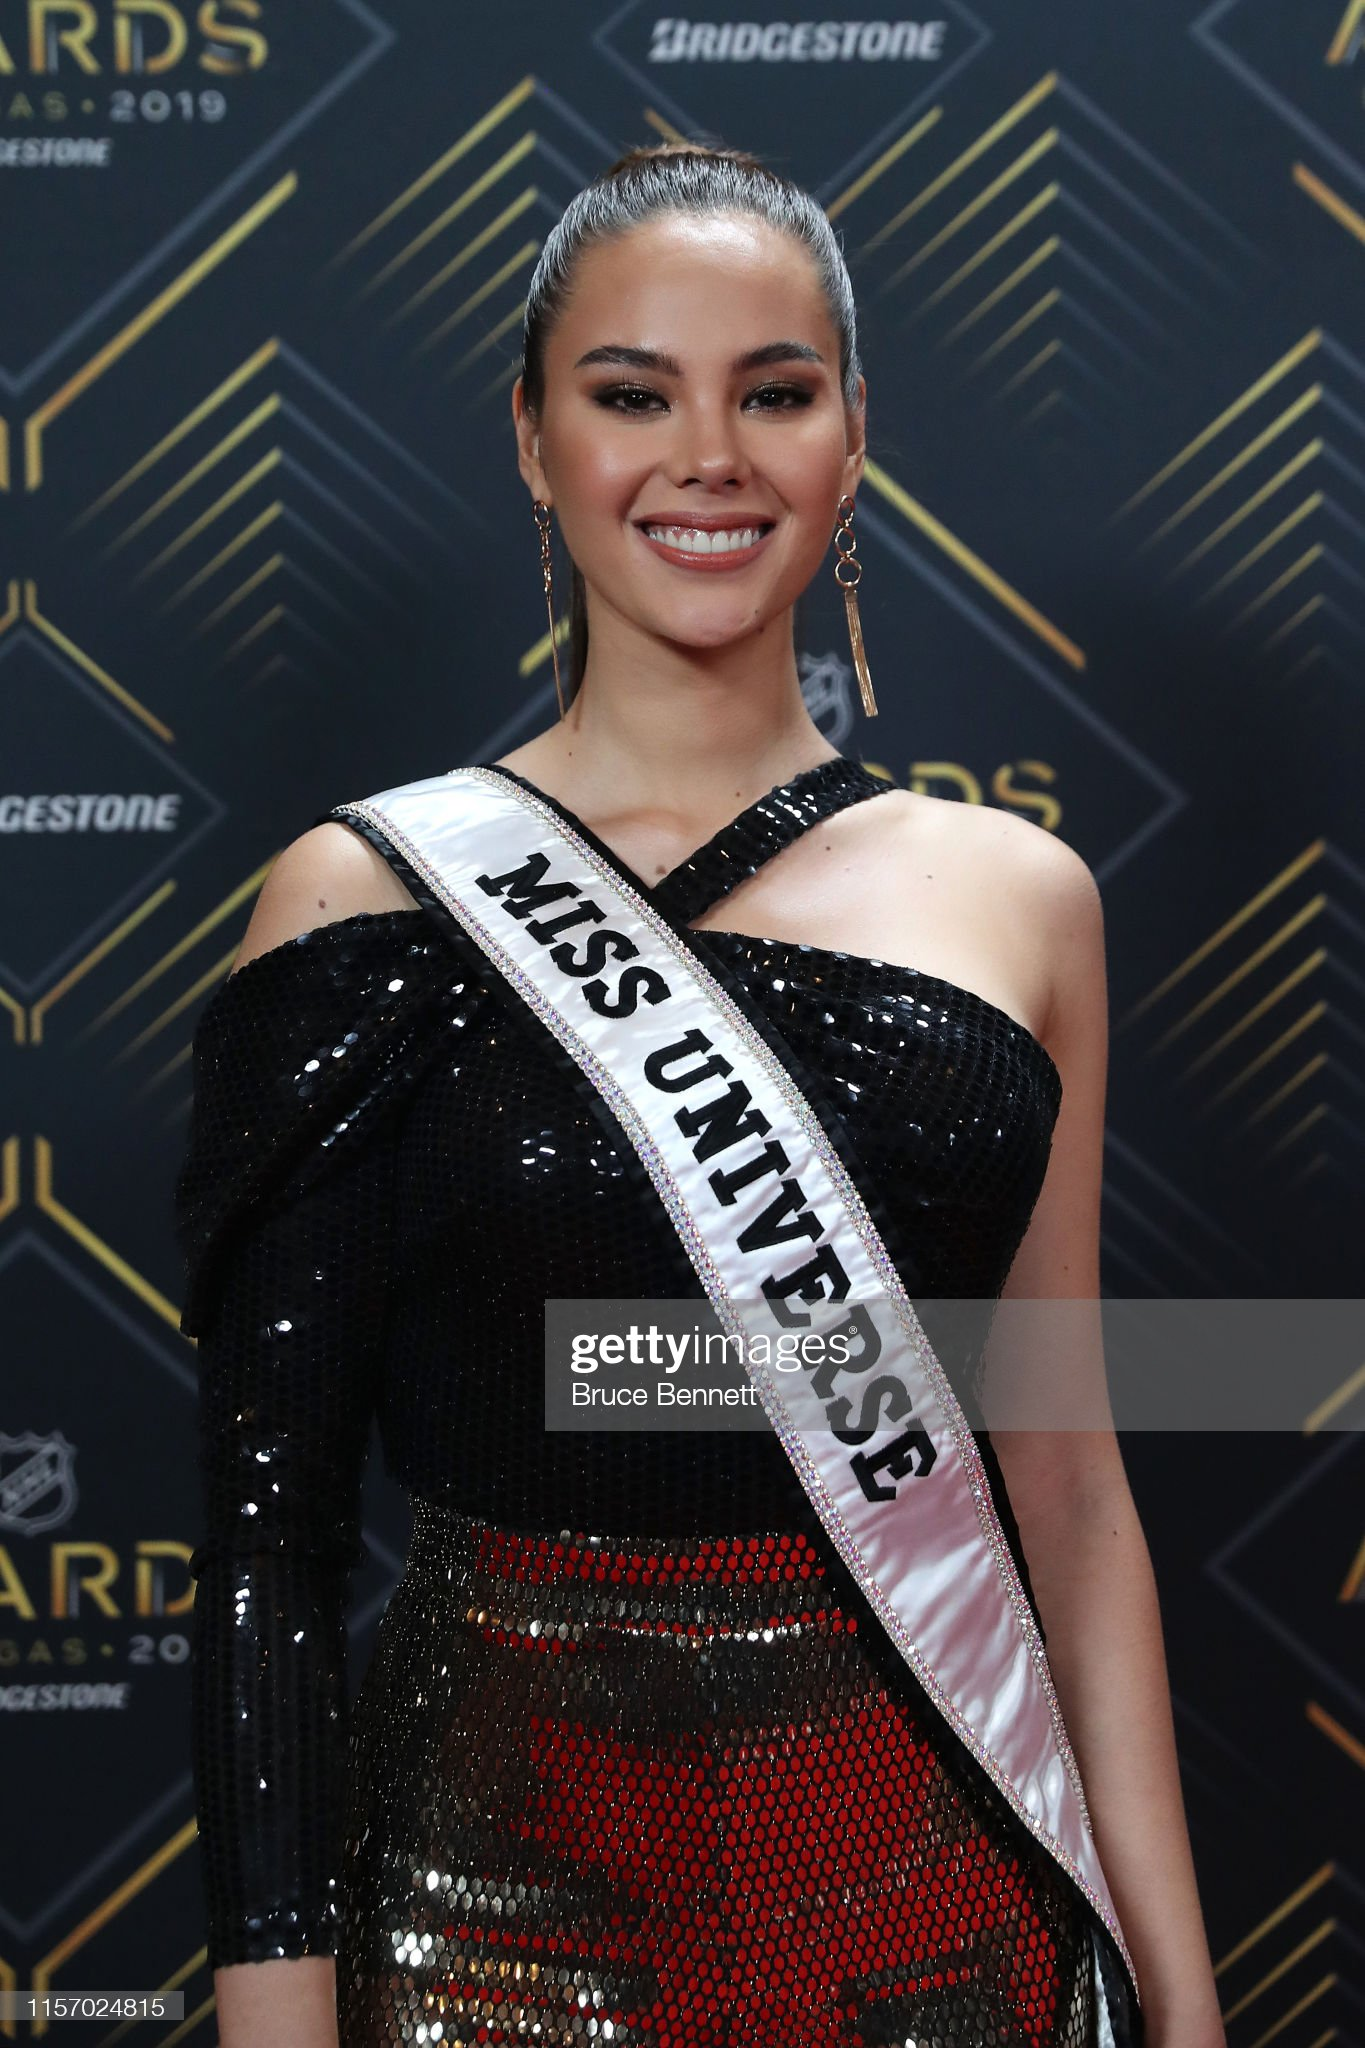 2018 | MISS UNIVERSE | CATRIONA GRAY - Page 34 Miss-universe-2018-catriona-gray-arrives-at-the-2019-nhl-awards-at-picture-id1157024815?s=2048x2048